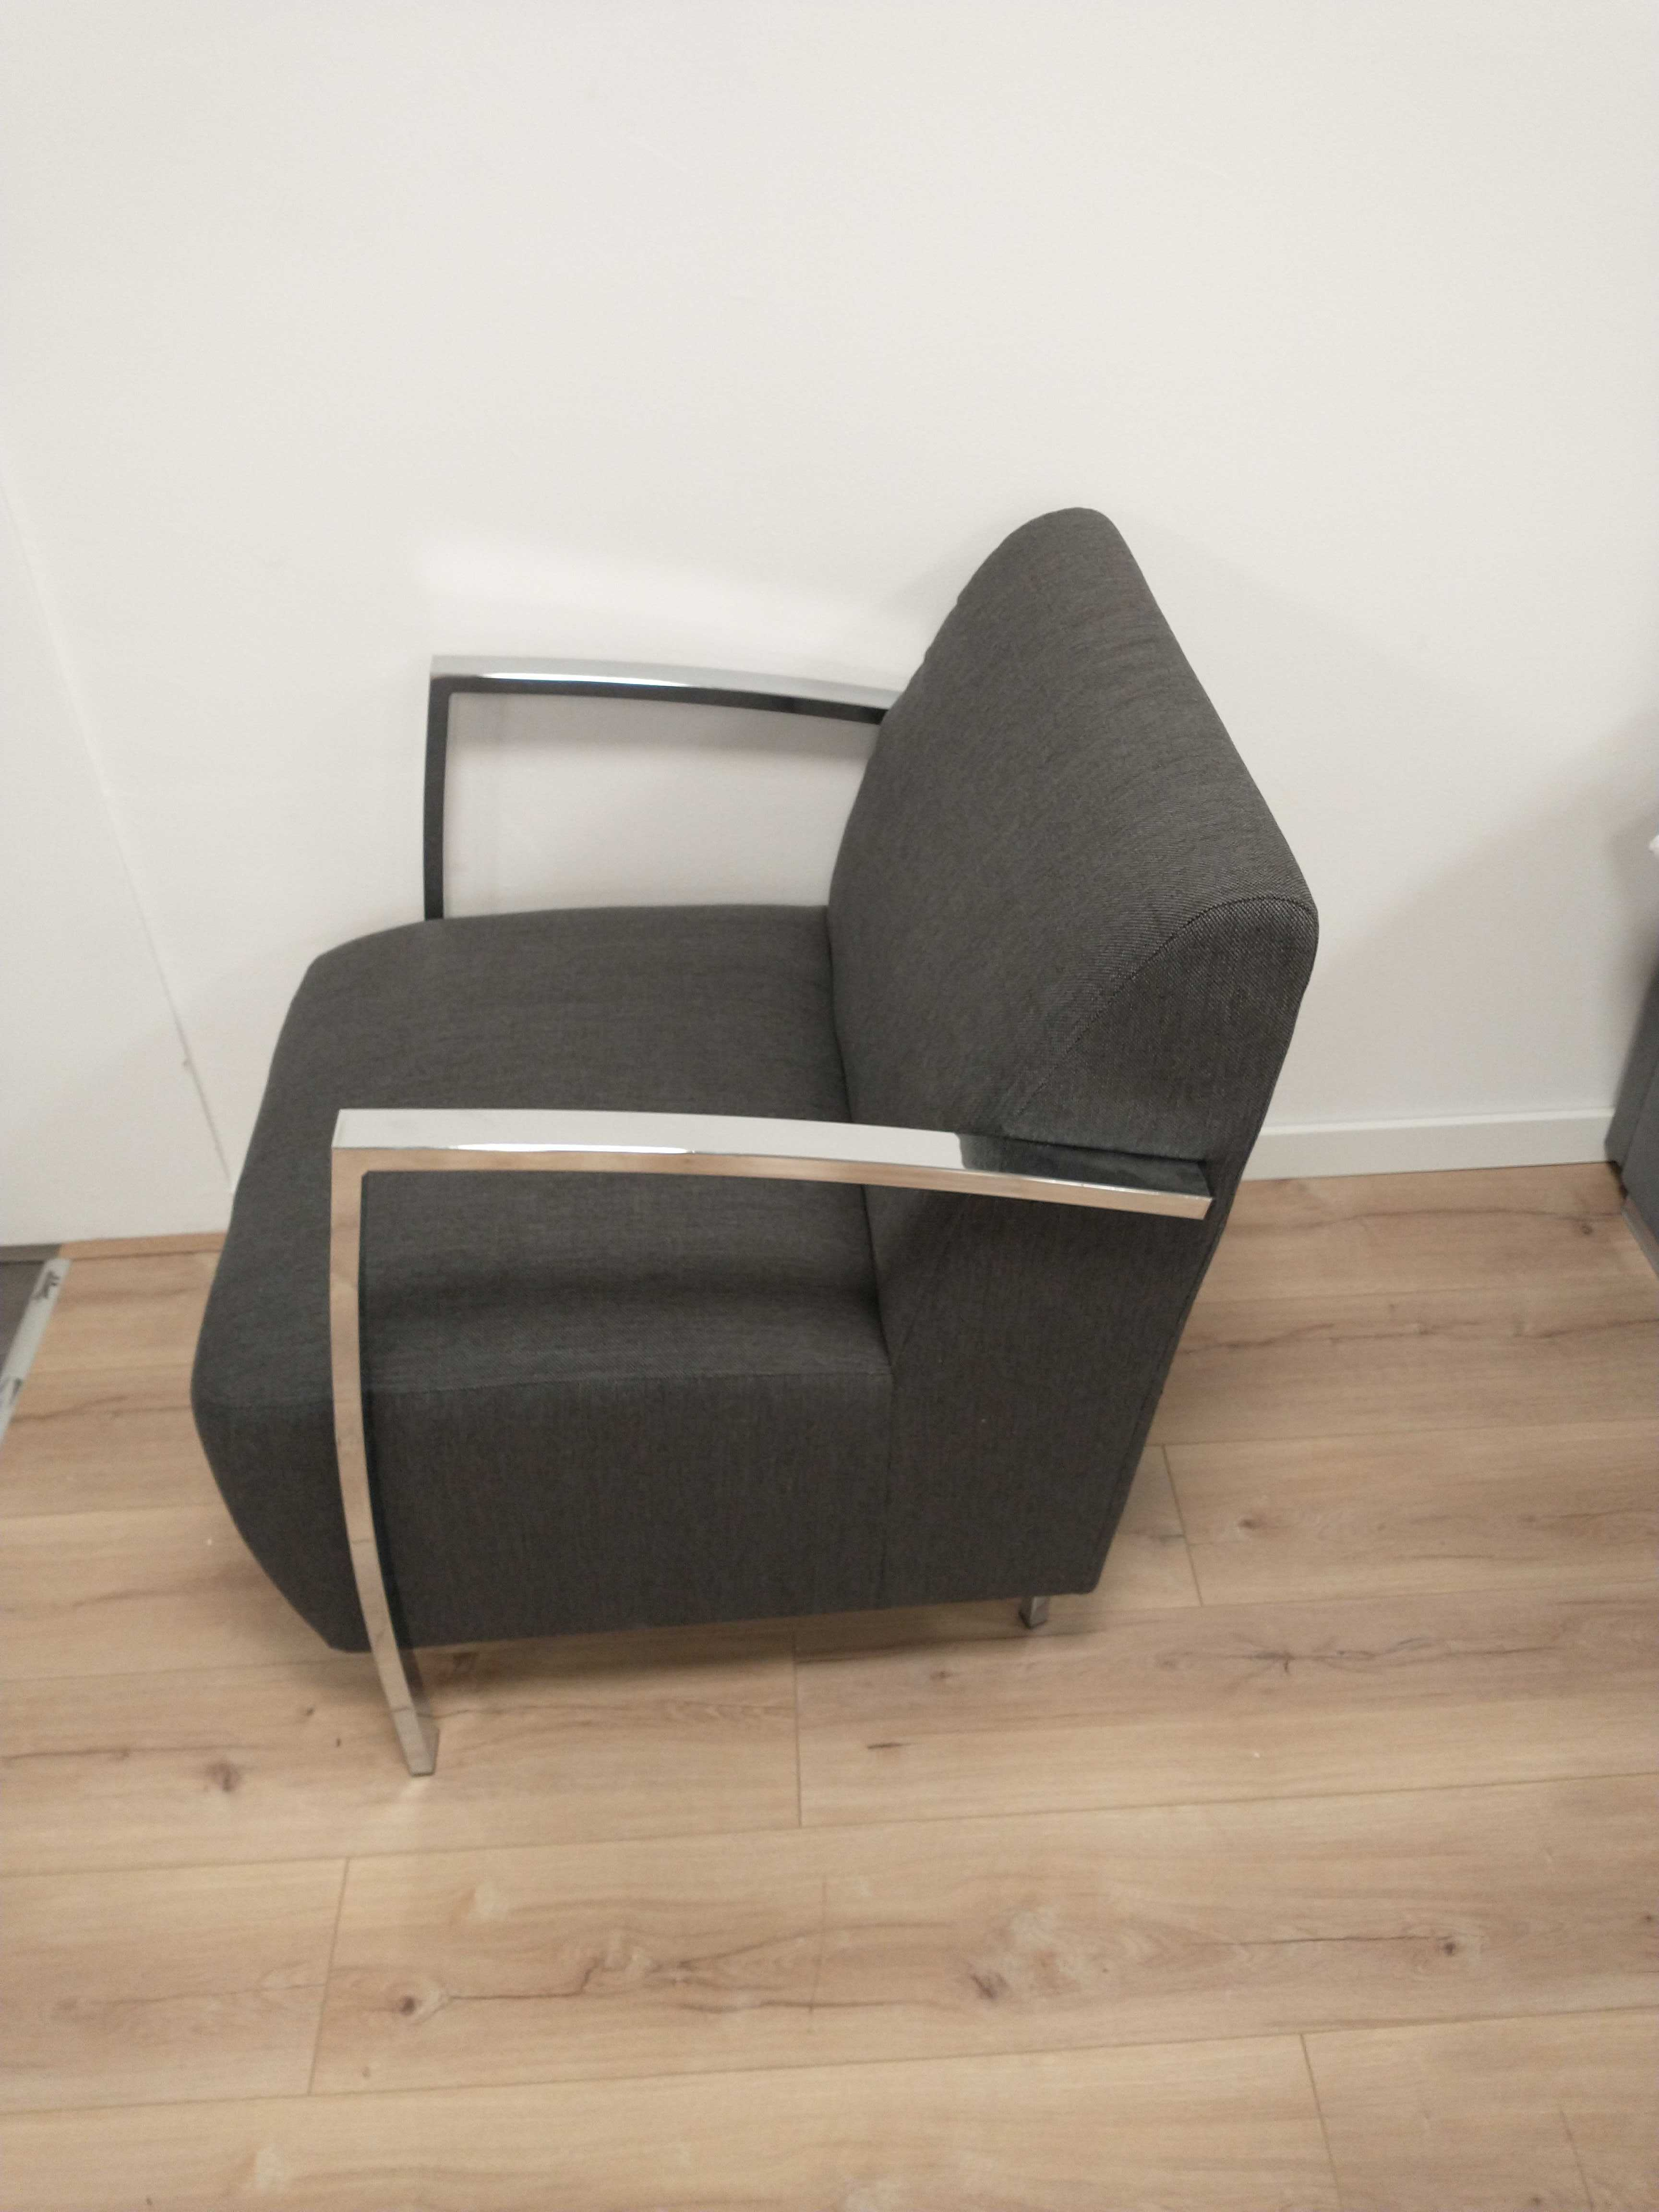 Showmodel fauteuil Teo - Eindhoven 2